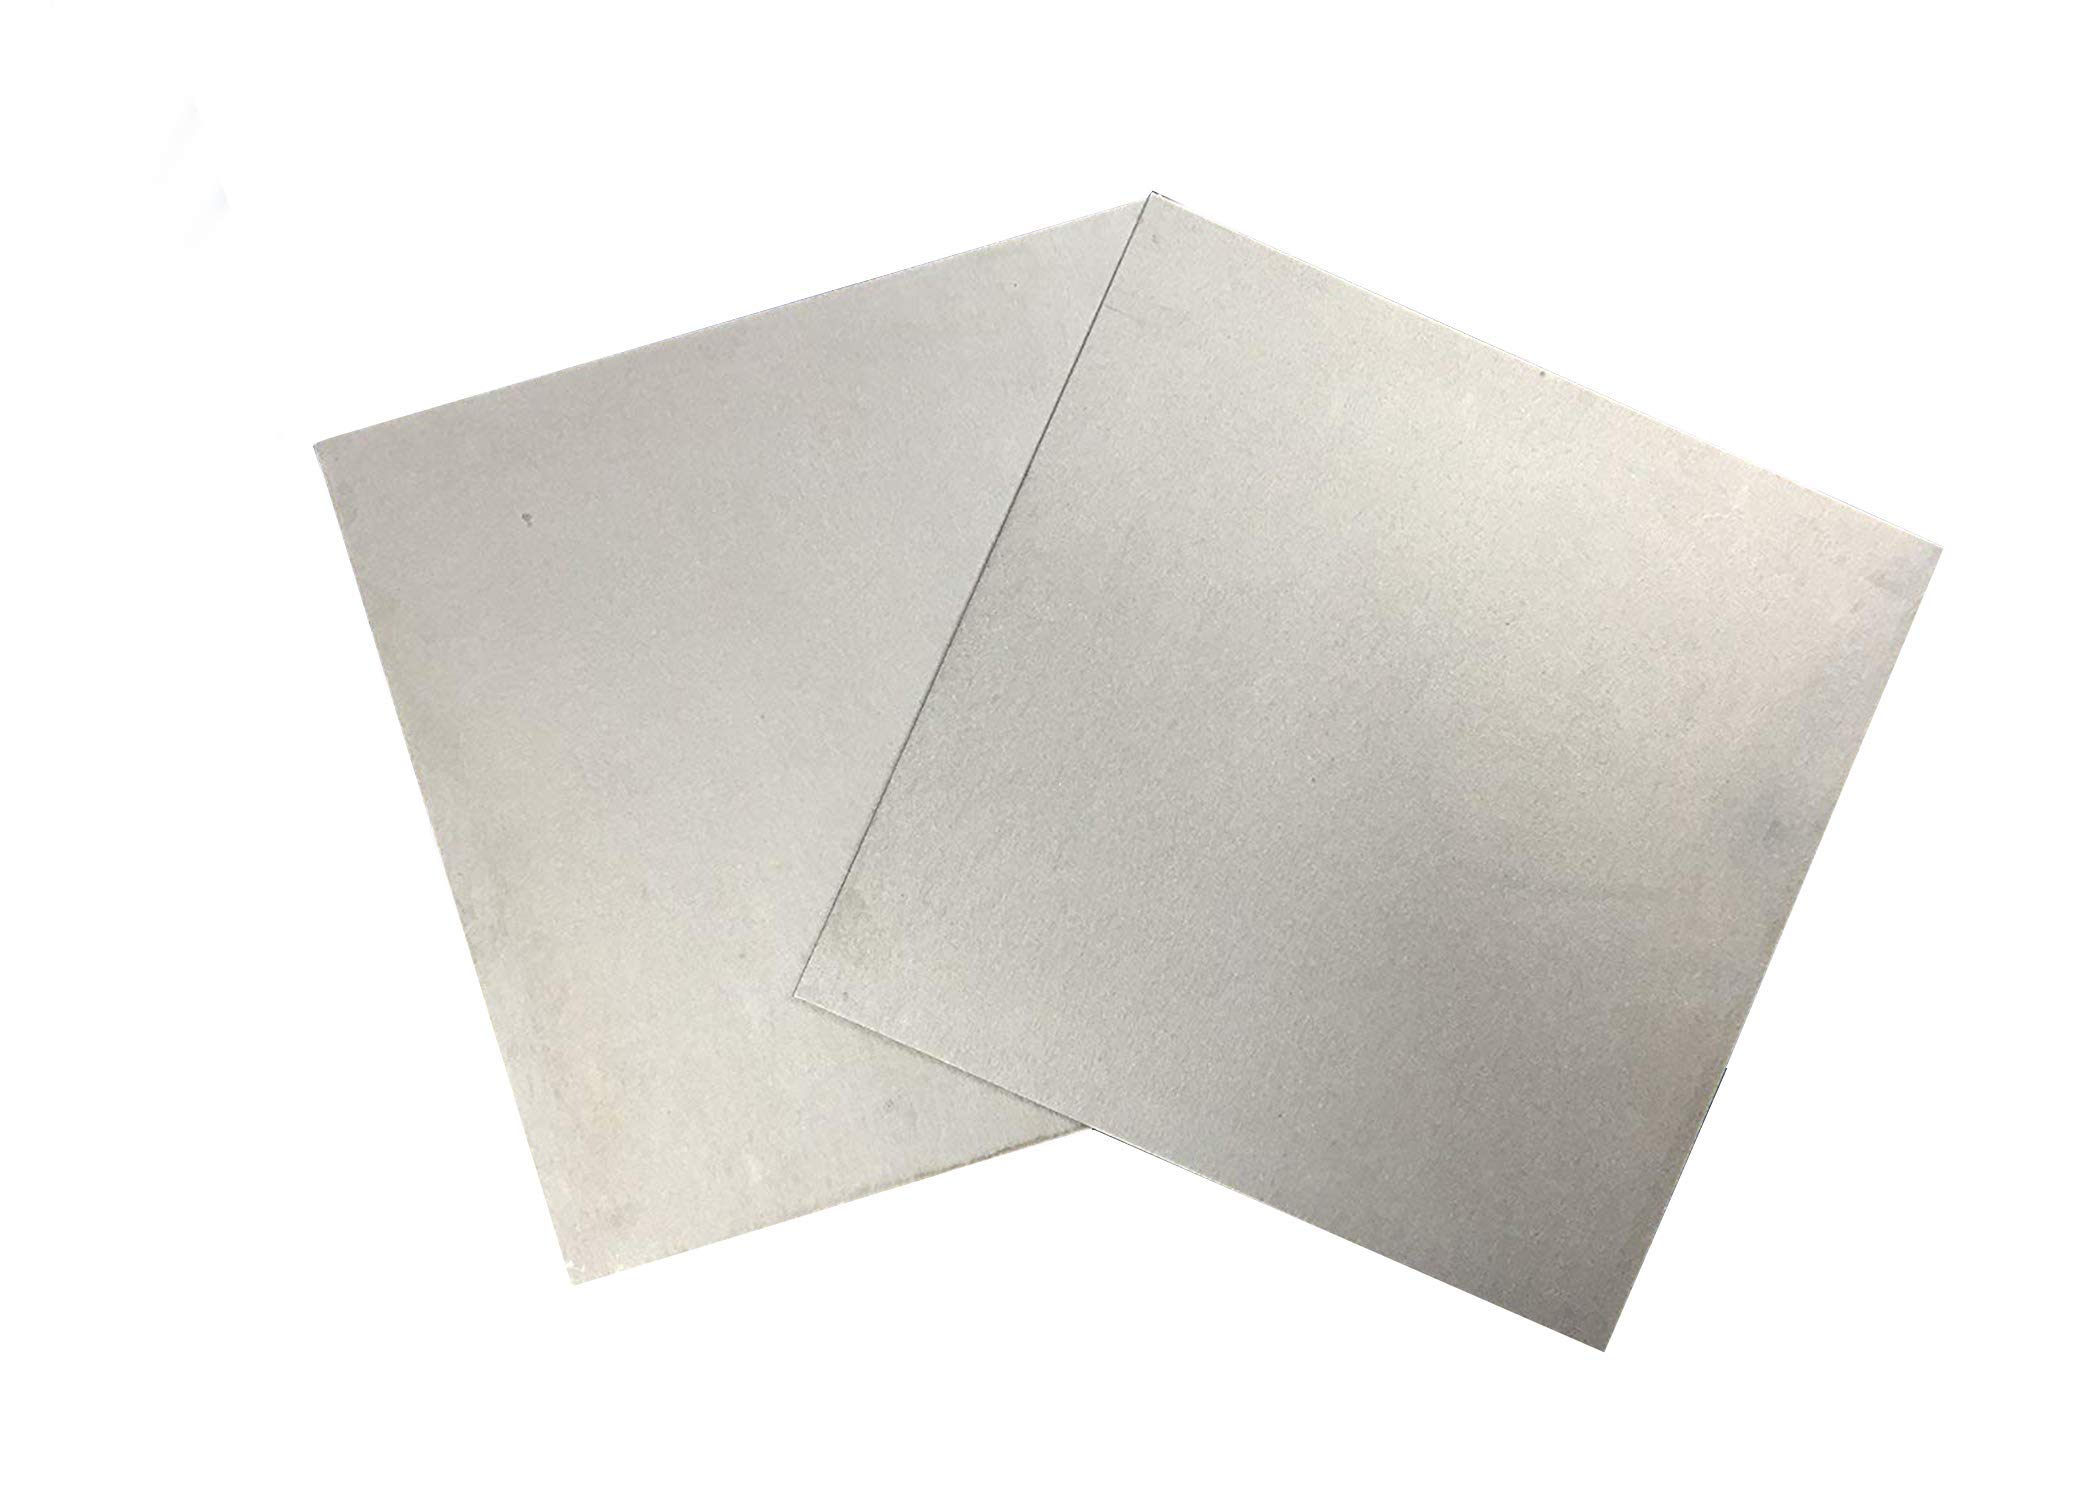 Tungsten Sheet/Plate 6''x6''x0.04'', Unpolished by Torrey Hills Technologies